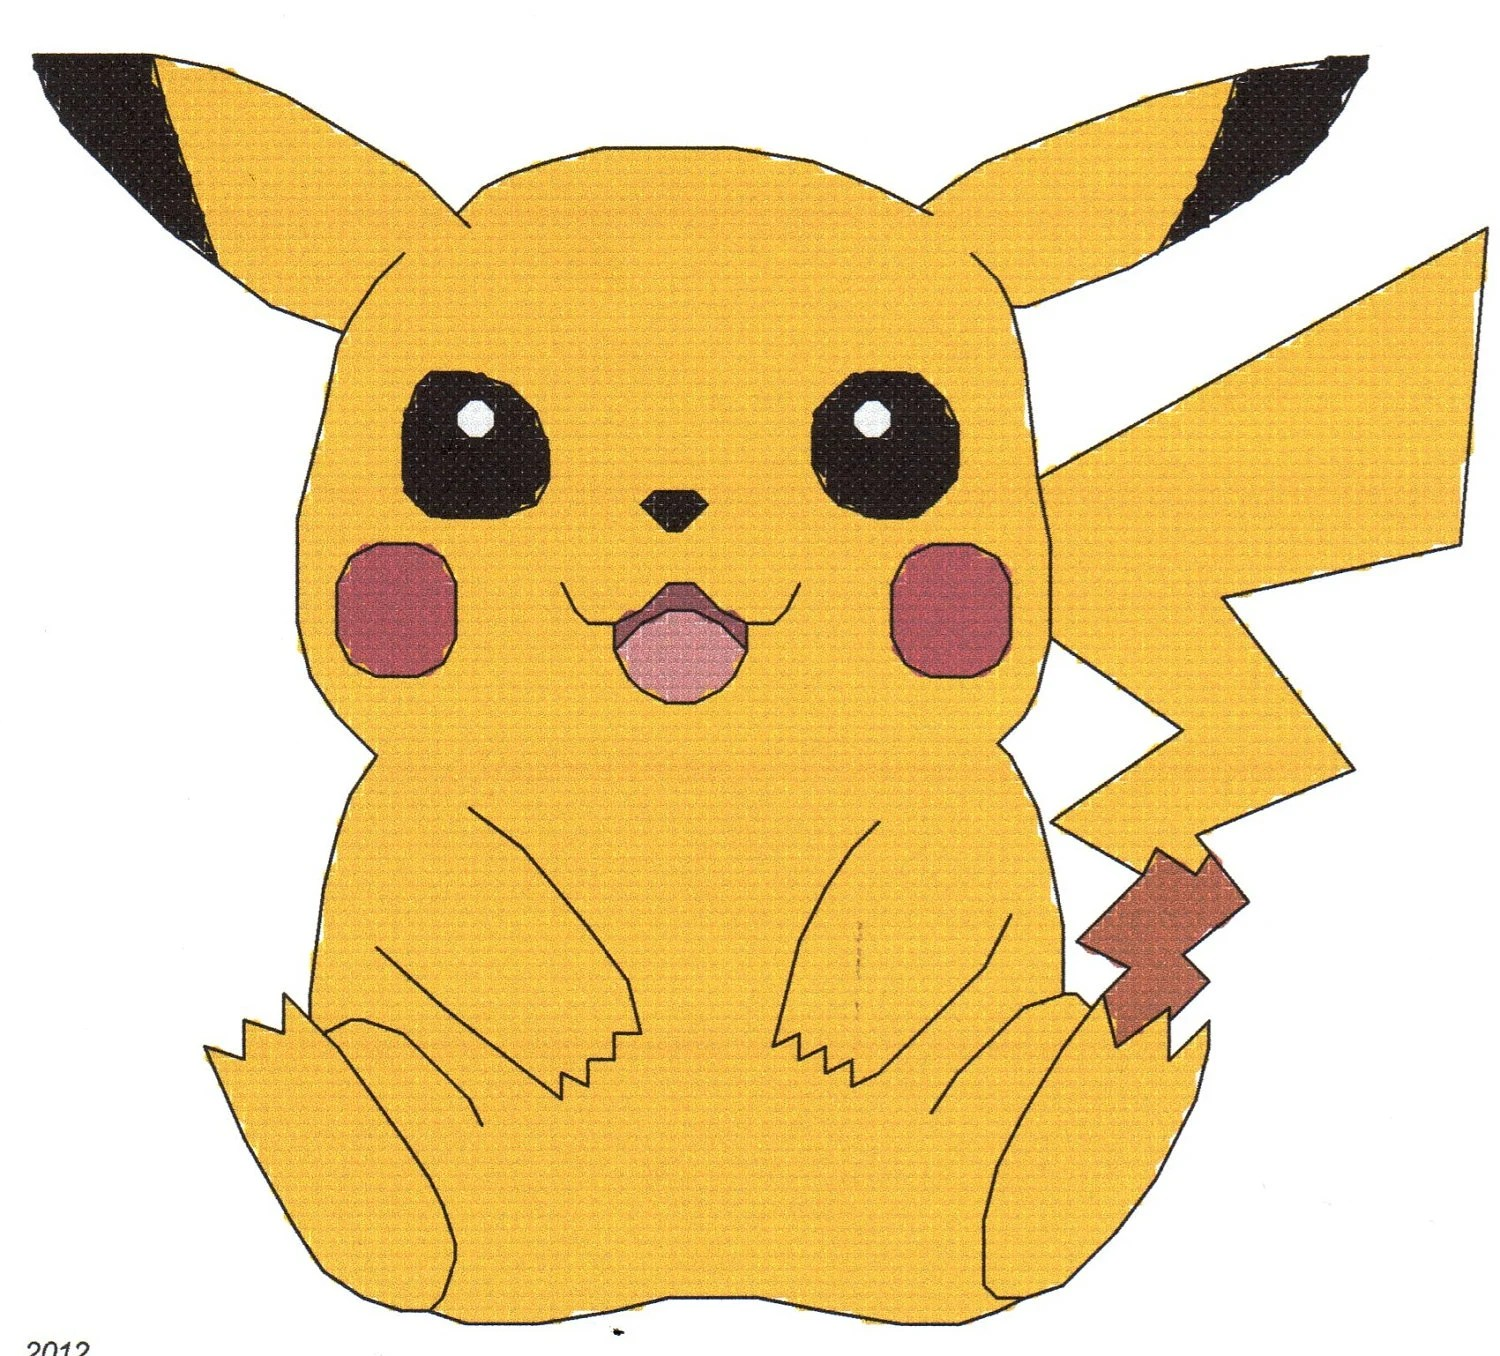 Pokemon Pikachu Counted Cross Stitch Pattern